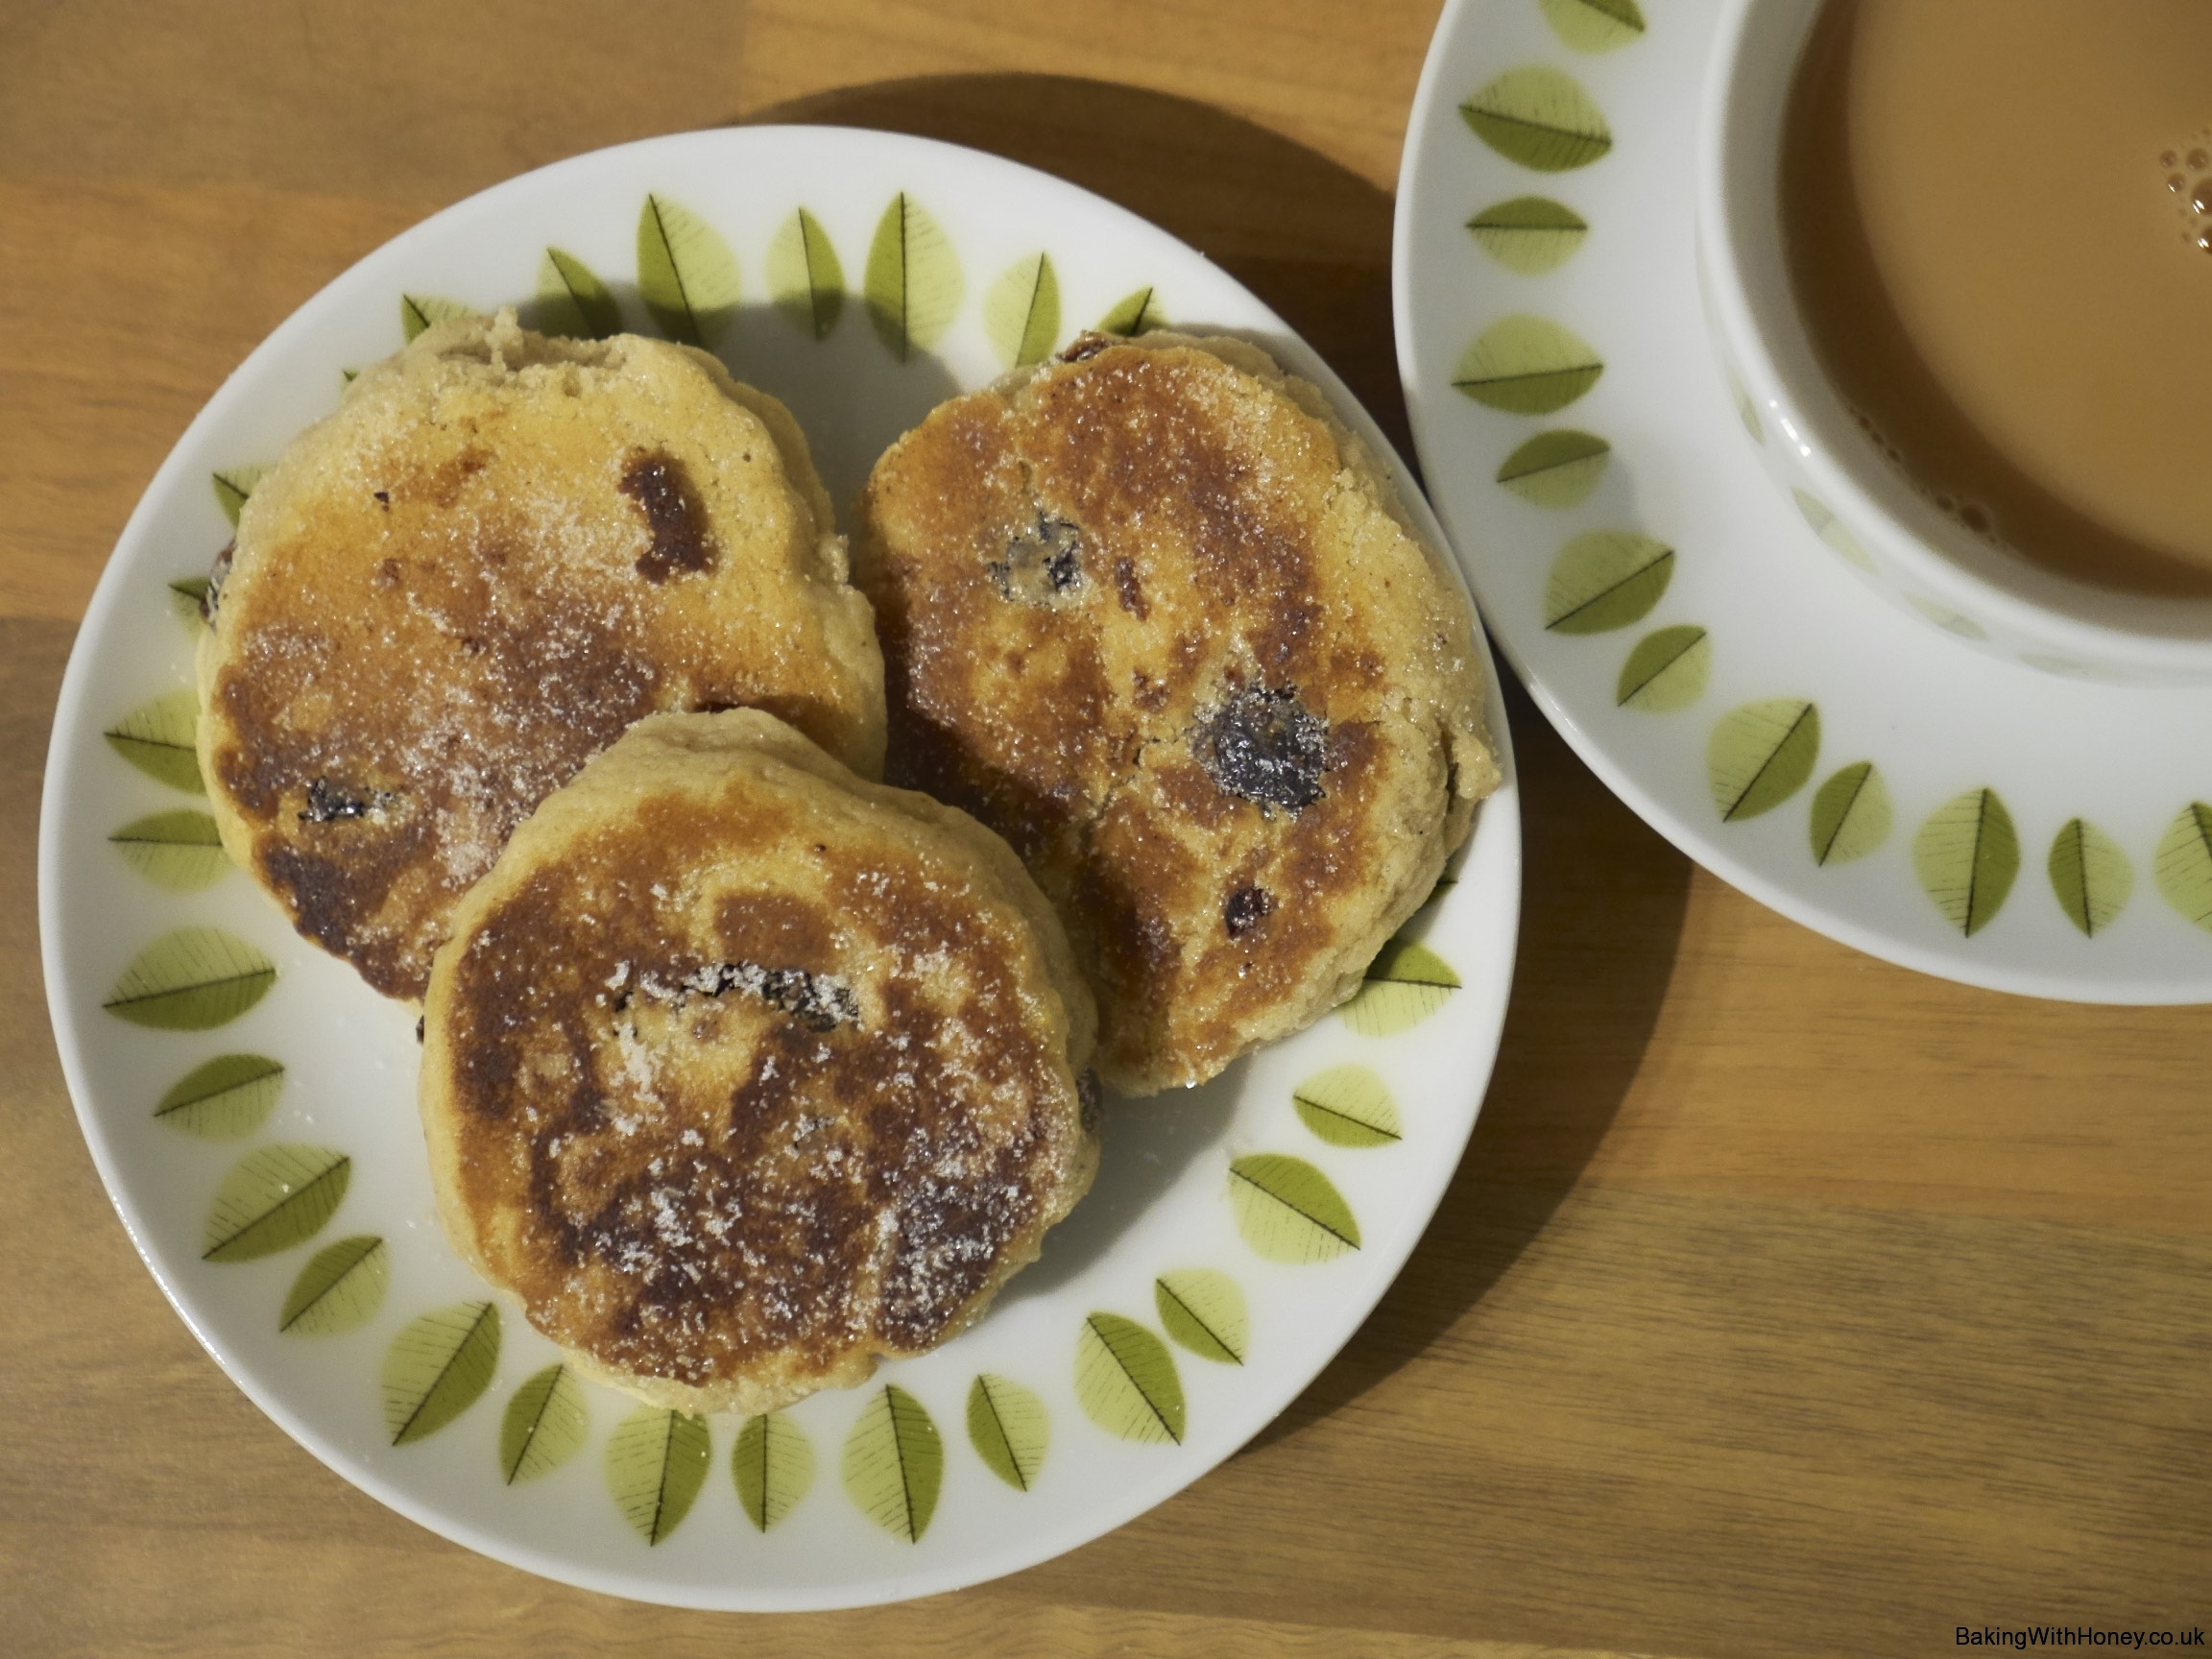 Welsh Cakes for St David's Day (Picau ar y Maen am Dydd Gŵyl Dewi)